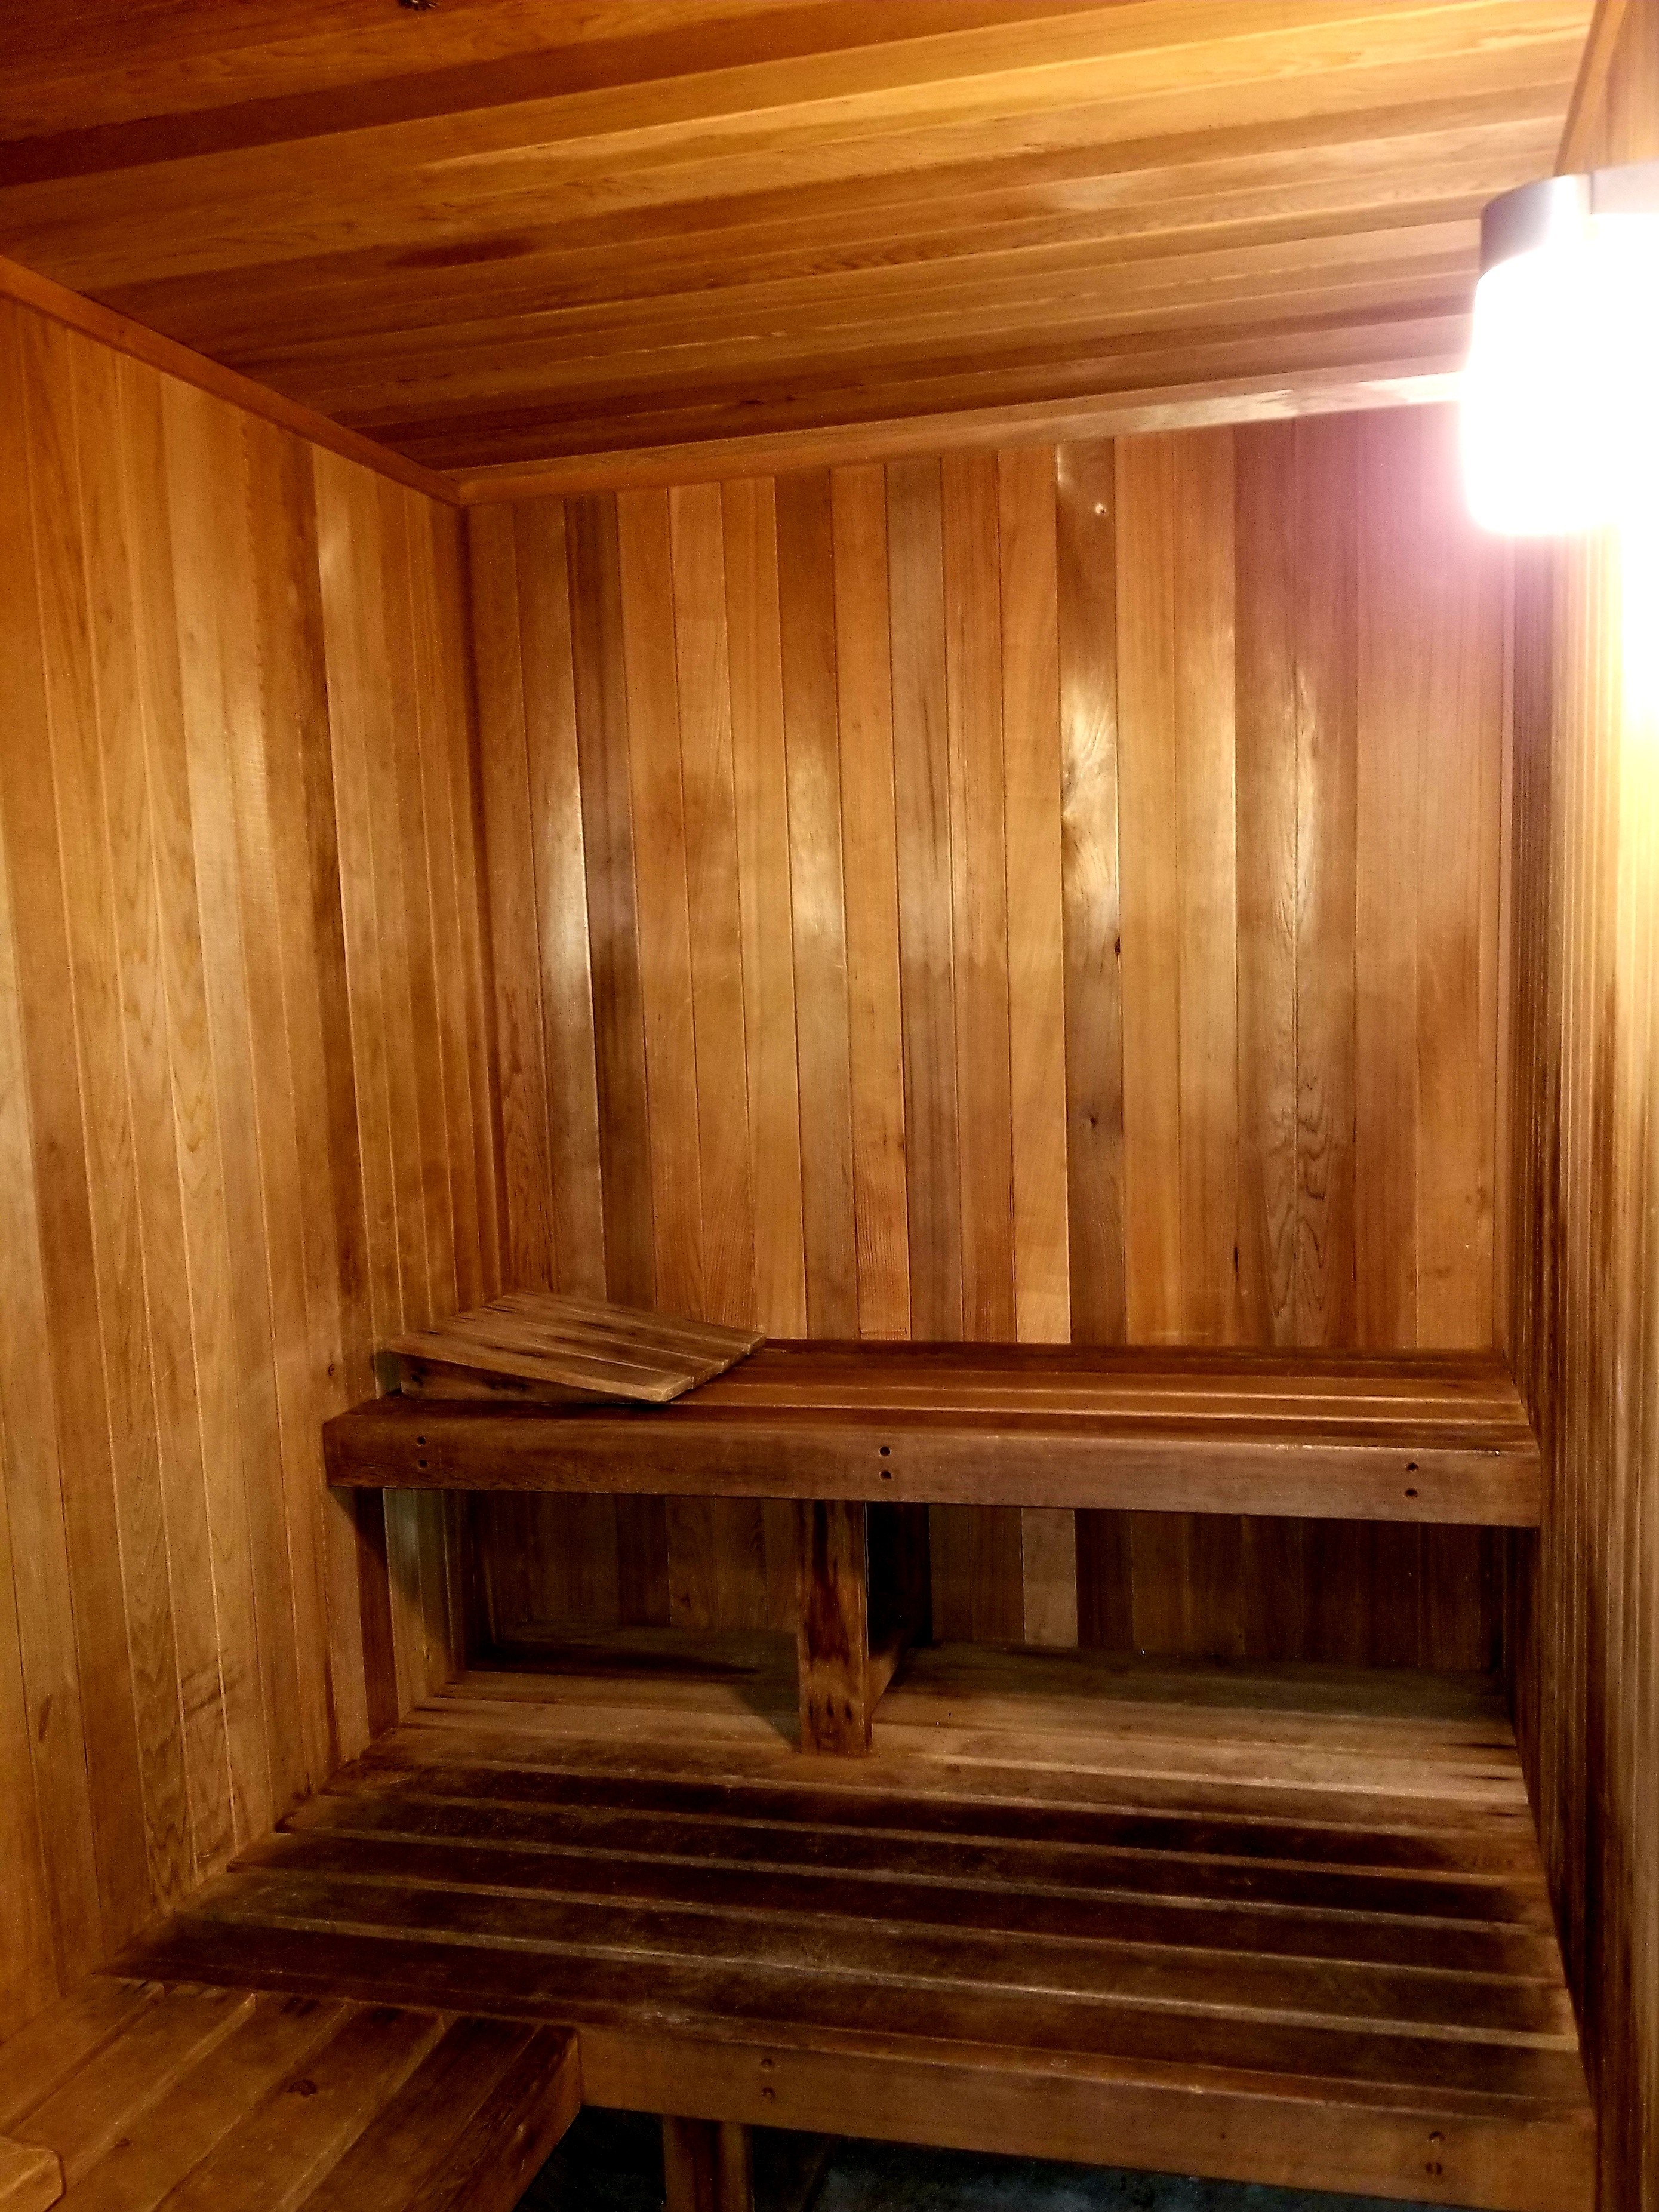 https://www.hotelsbyday.com/_data/default-hotel_image/2/10858/sauna.jpg